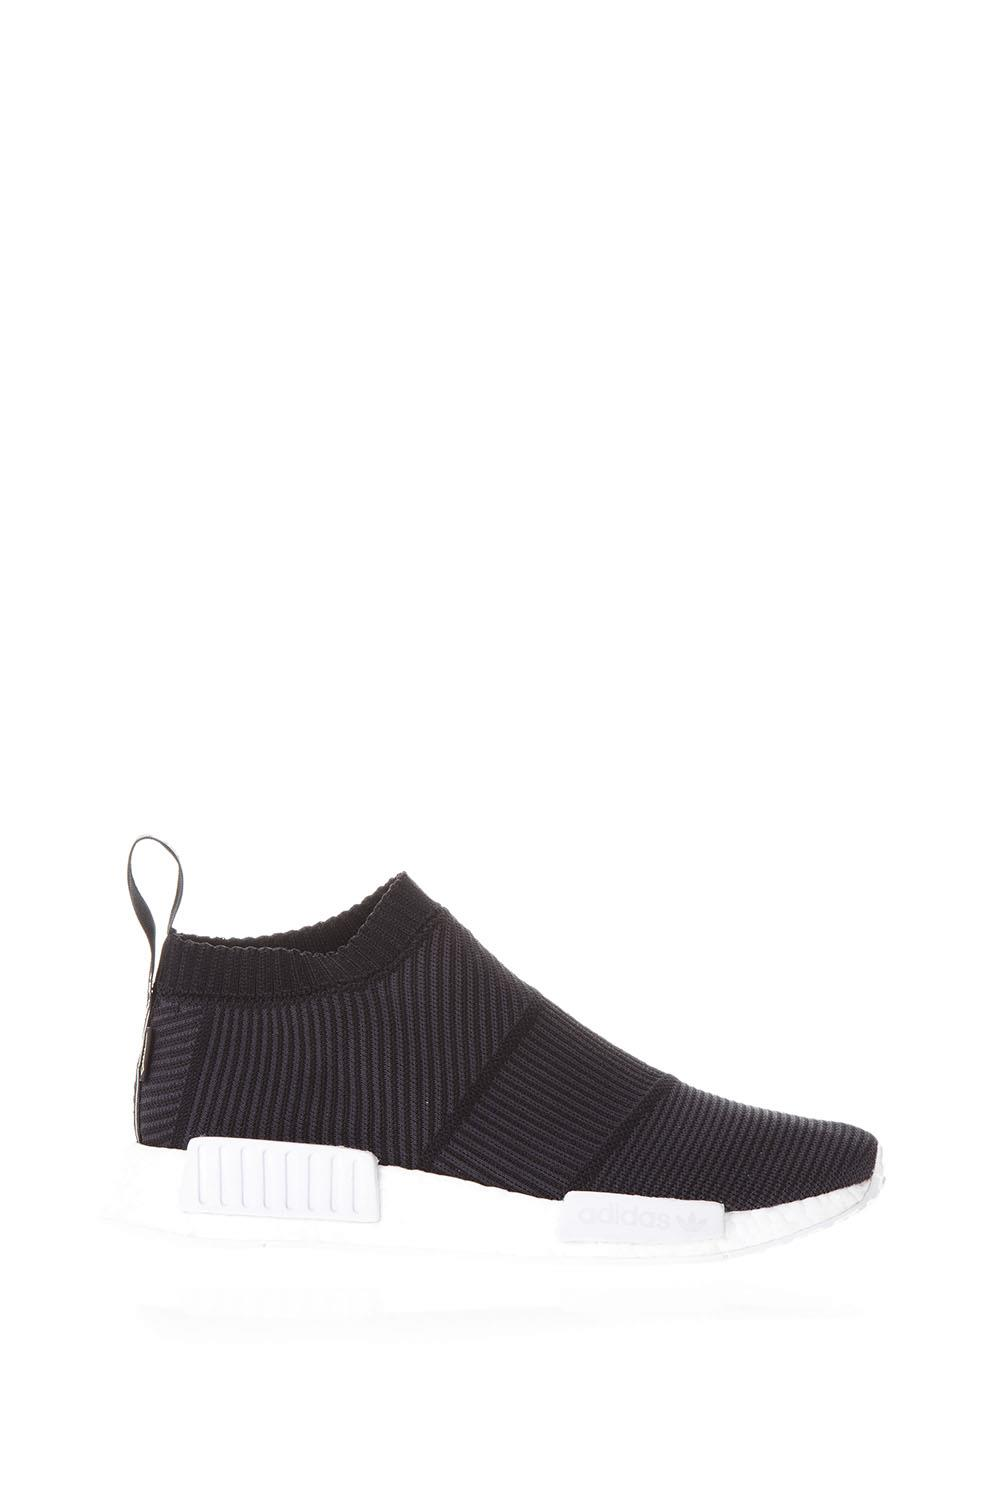 timeless design c0691 42539 SNEAKERS NMD CS1 GTX IN BLACK PRIMEKNIT SS 2018 - ADIDAS ORIGINALS -  Boutique Galiano